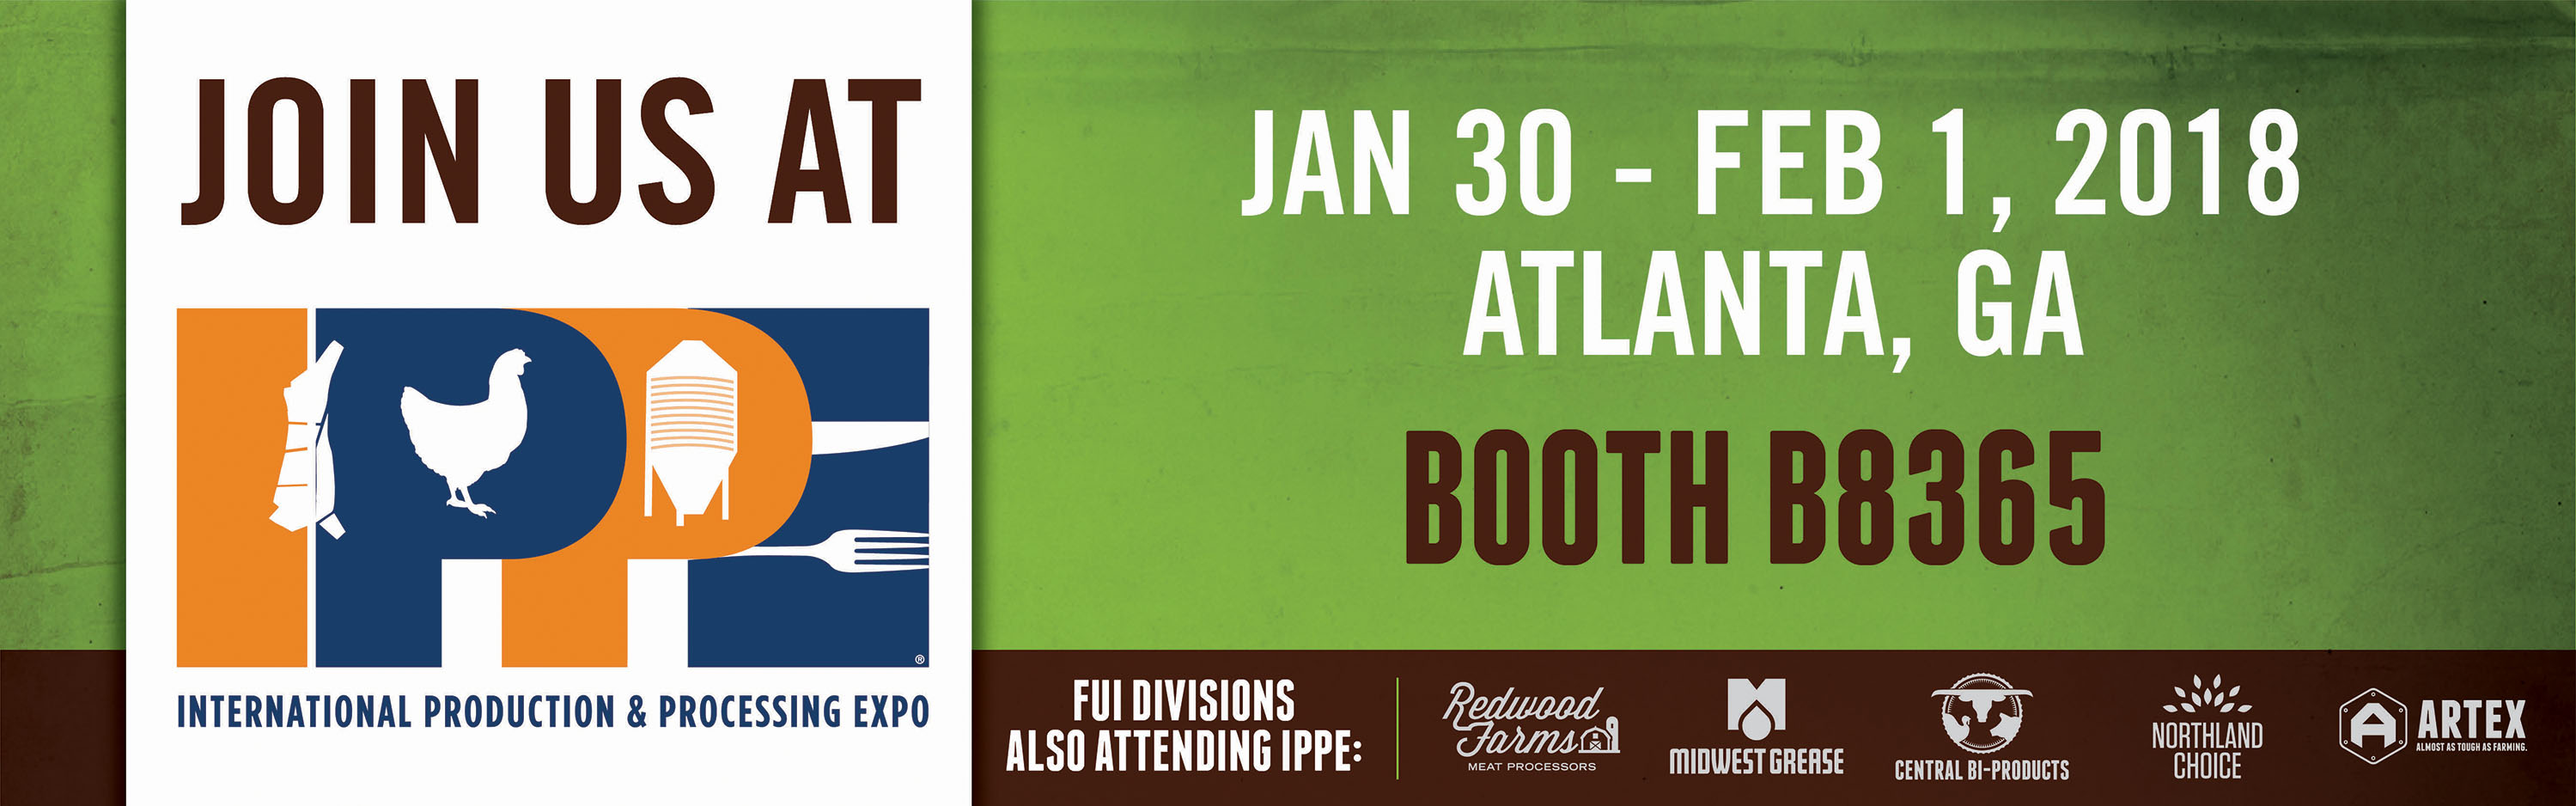 Join us at IPPE in Atlanta, GA. In Booth B8365 January 30-February 2nd.